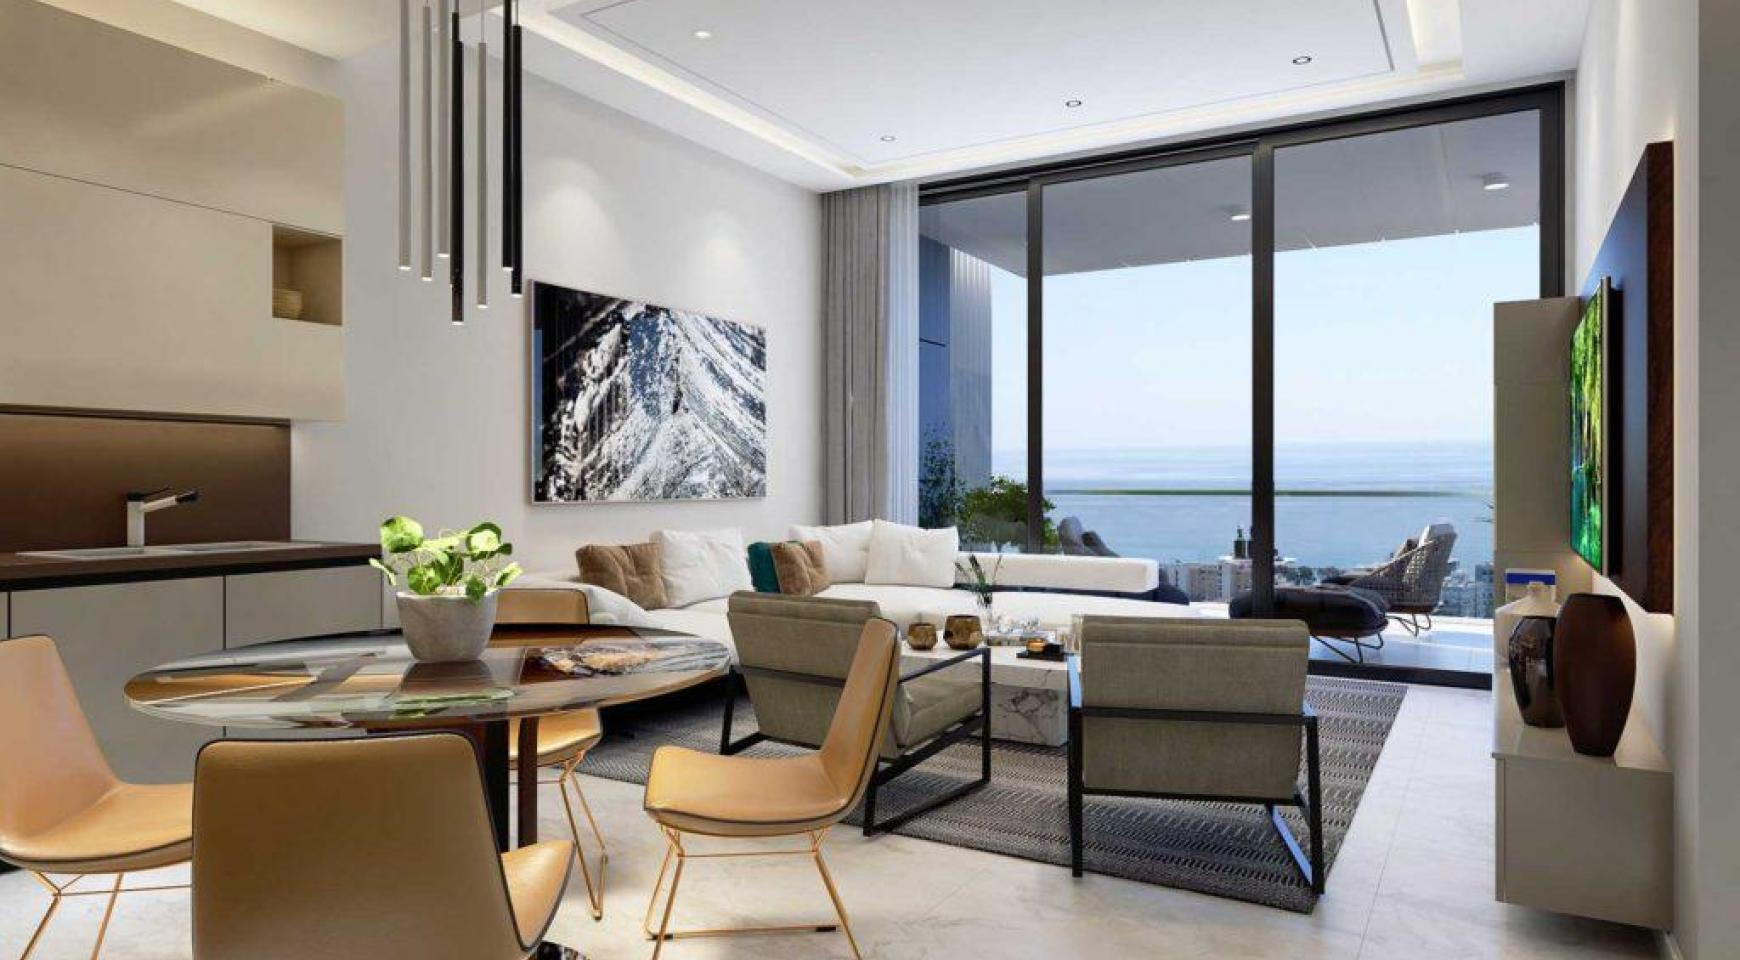 Contemporary 2 Bedroom Apartment with Sea Views in a Luxury Complex - 4